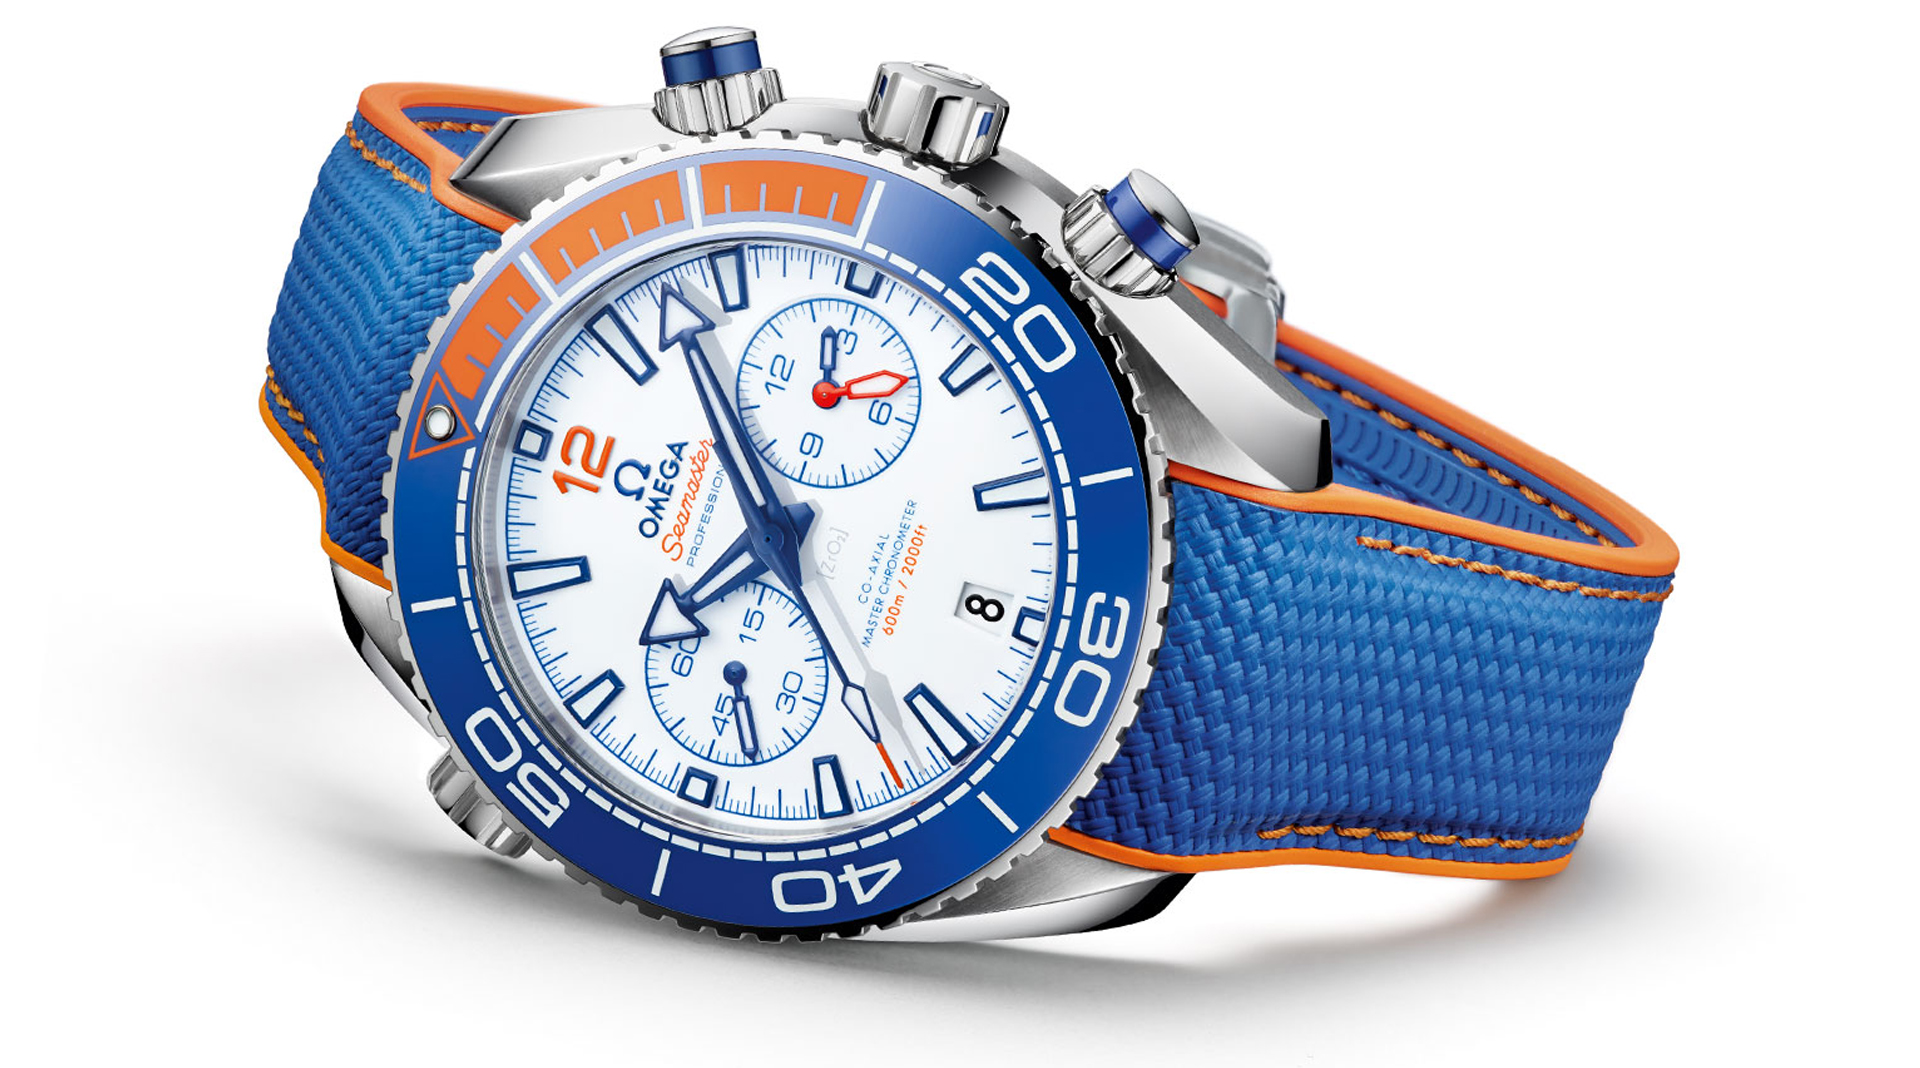 Omega Seamaster Planet Ocean Michael Phelps Limited Edition 215.32.46.51.04.001 side